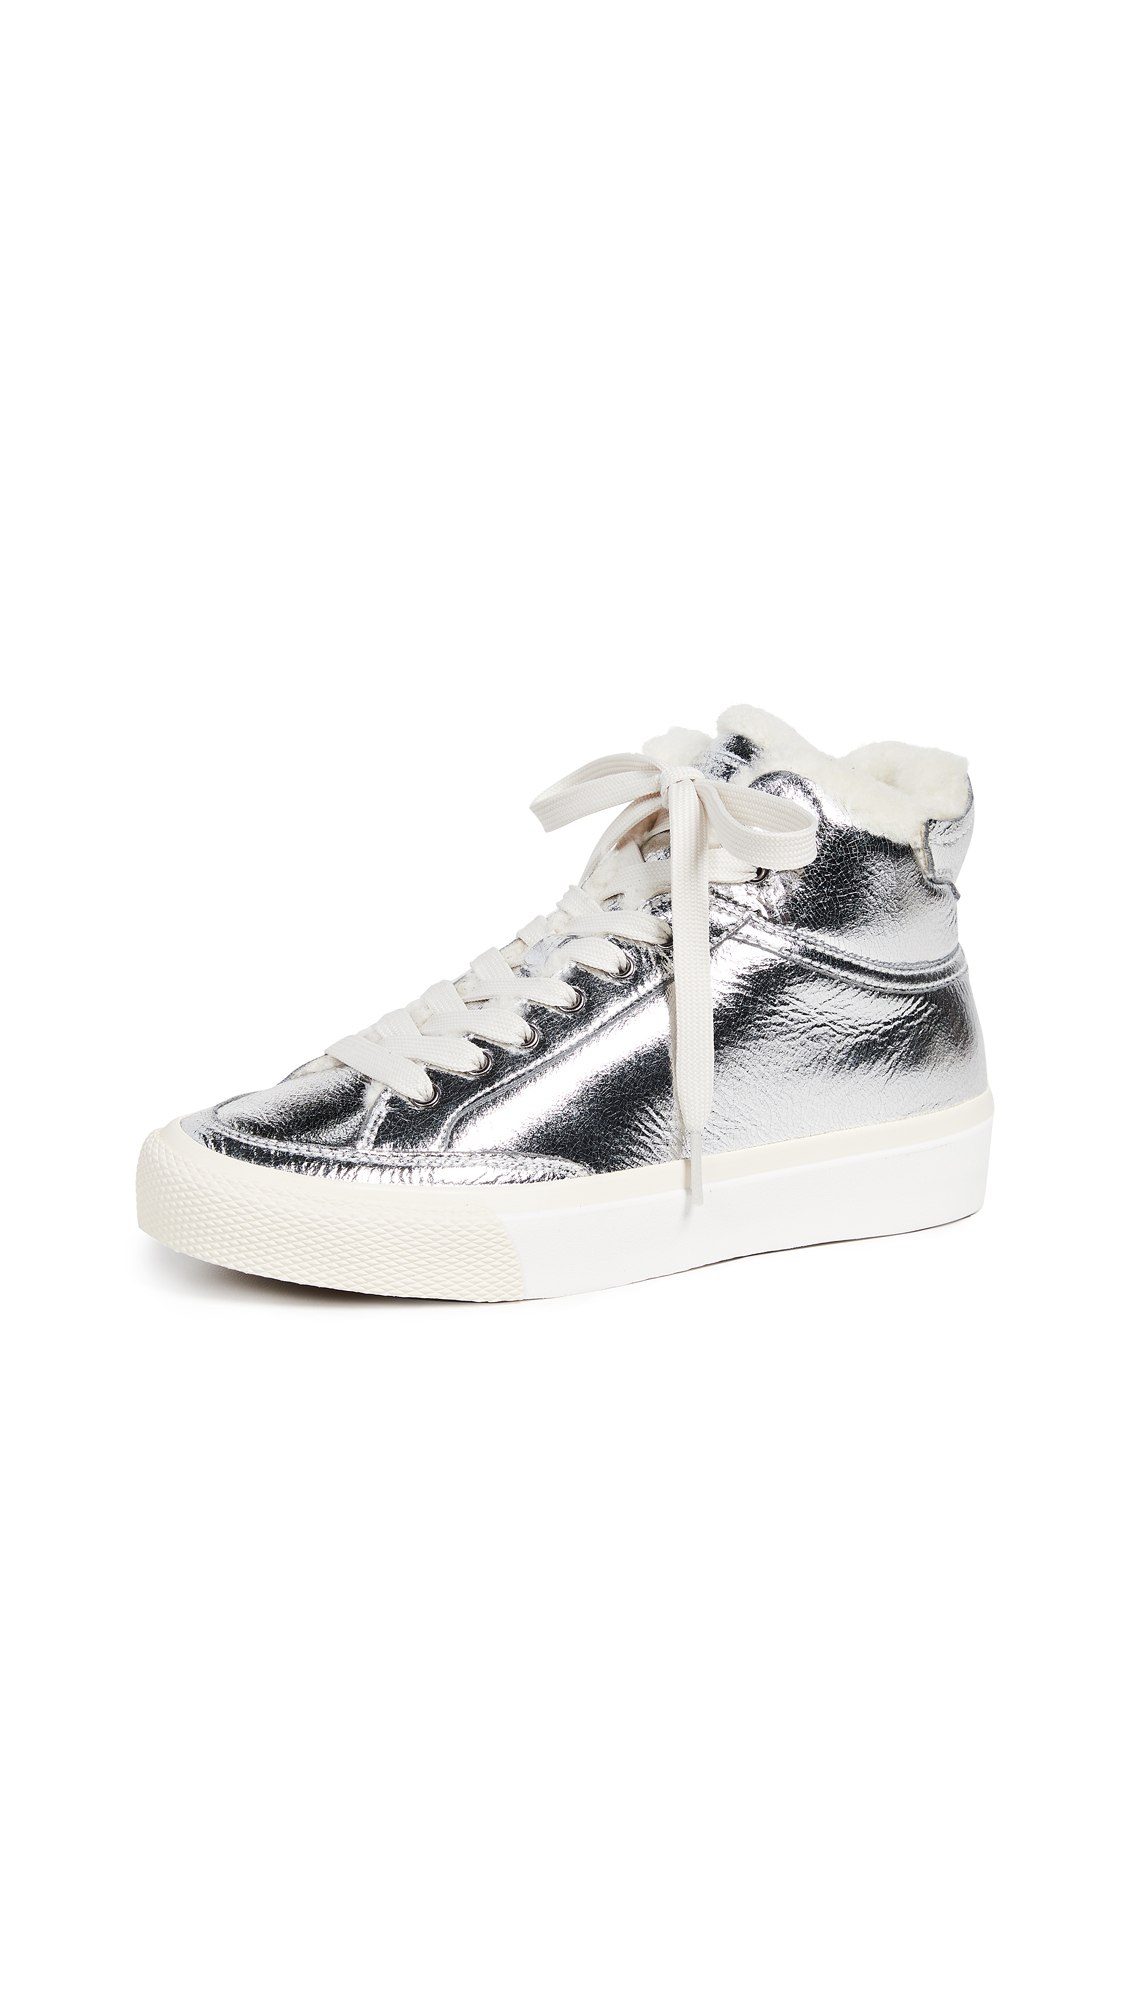 Rag & Bone RB Army High Top Sneakers